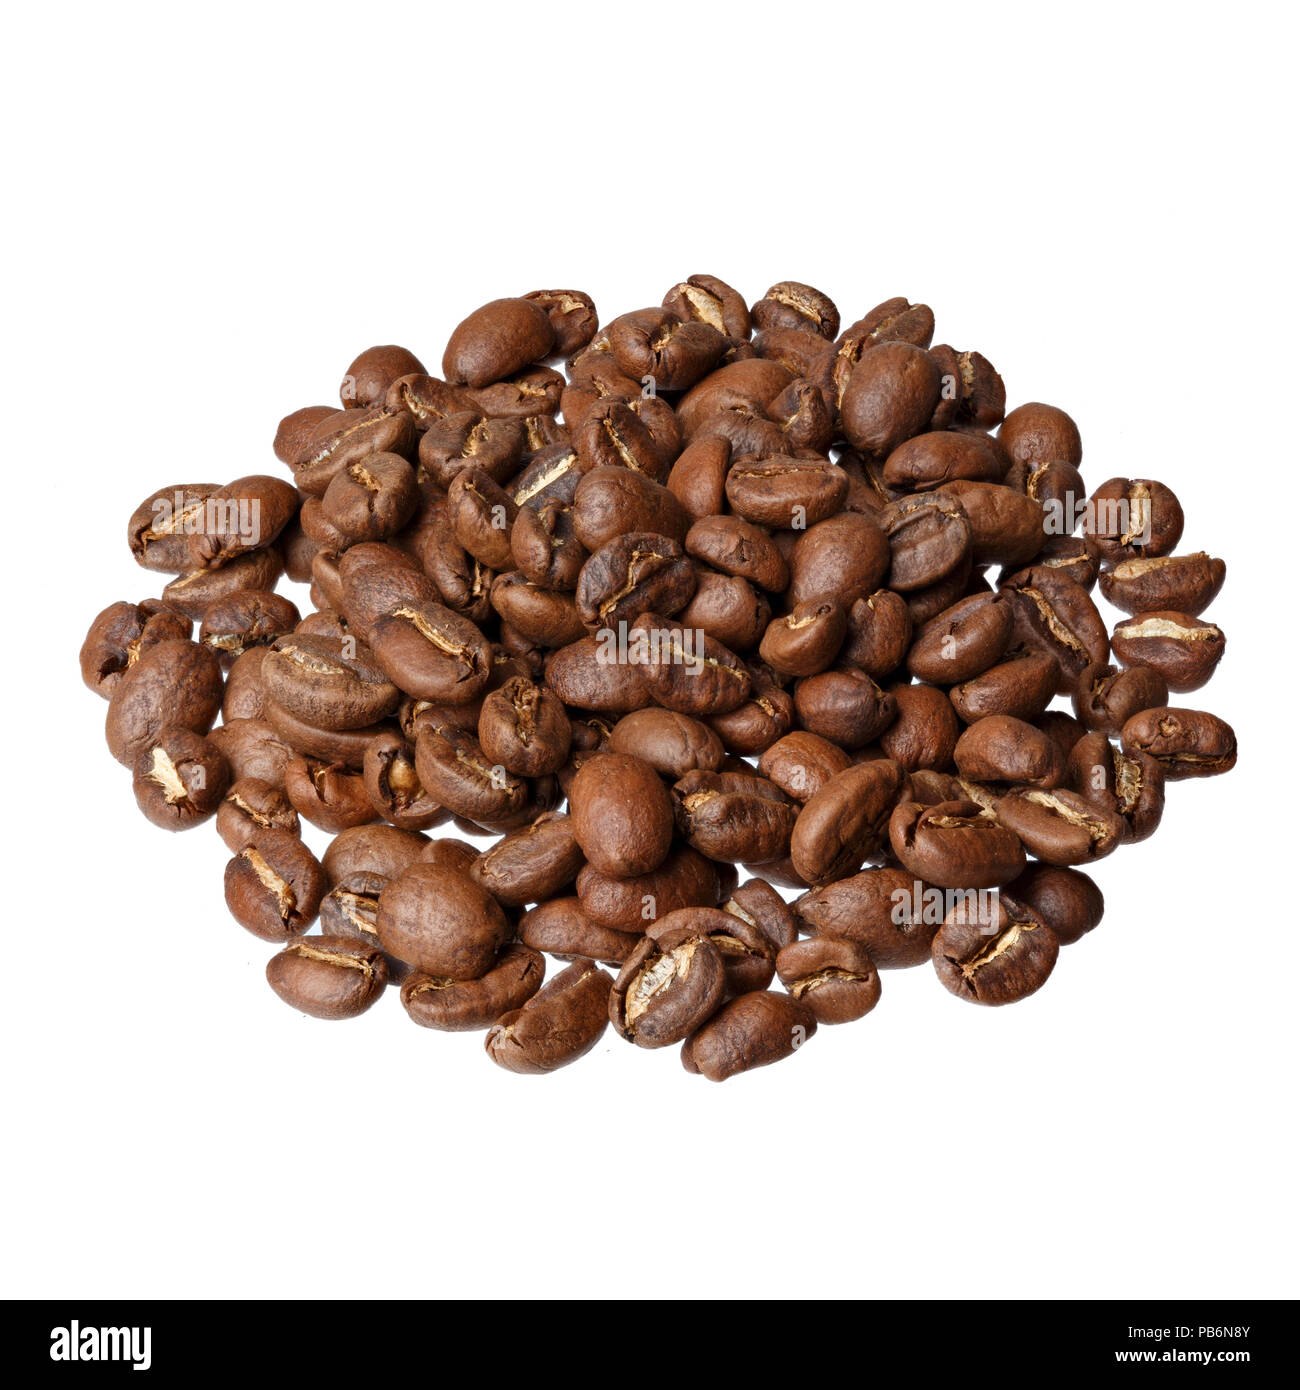 Ethiopia Sidamo gourmet coffee on white background. - Stock Image